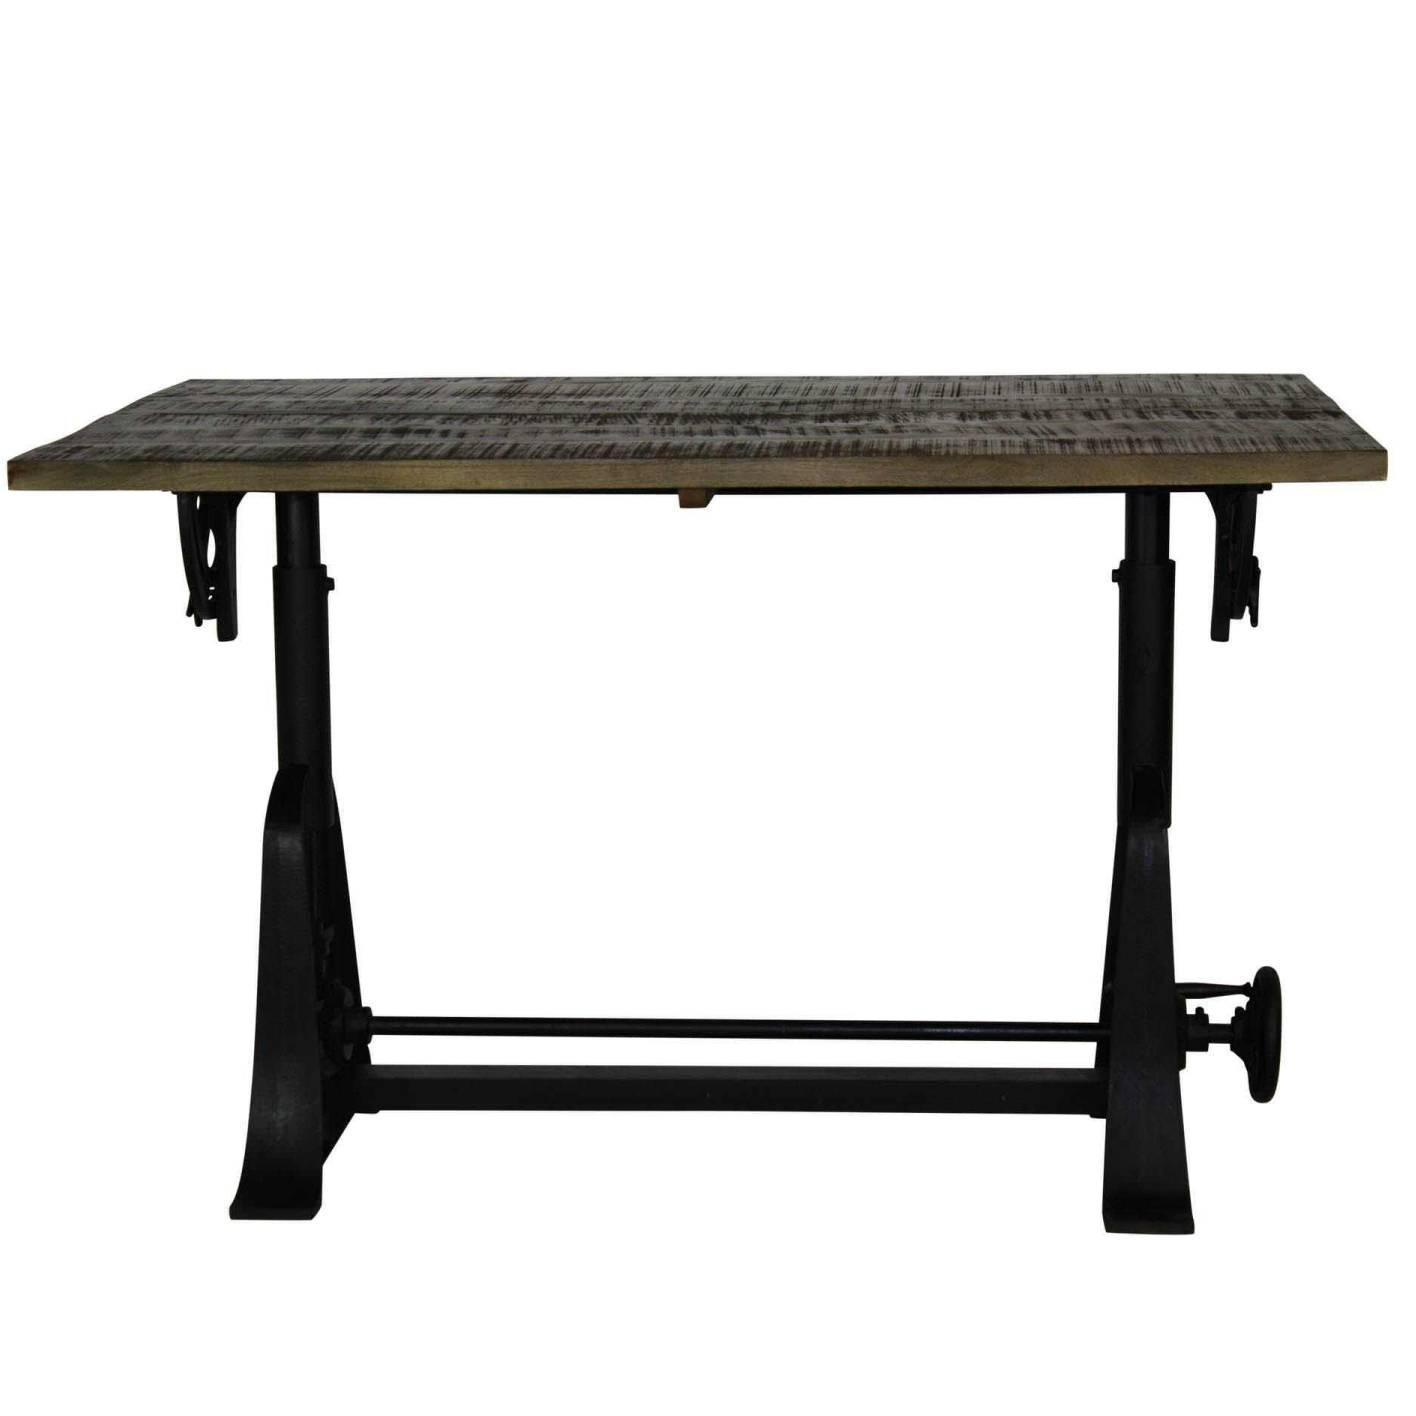 drafting table chair height pictures of chairs on the beach industrial style with adjustable and